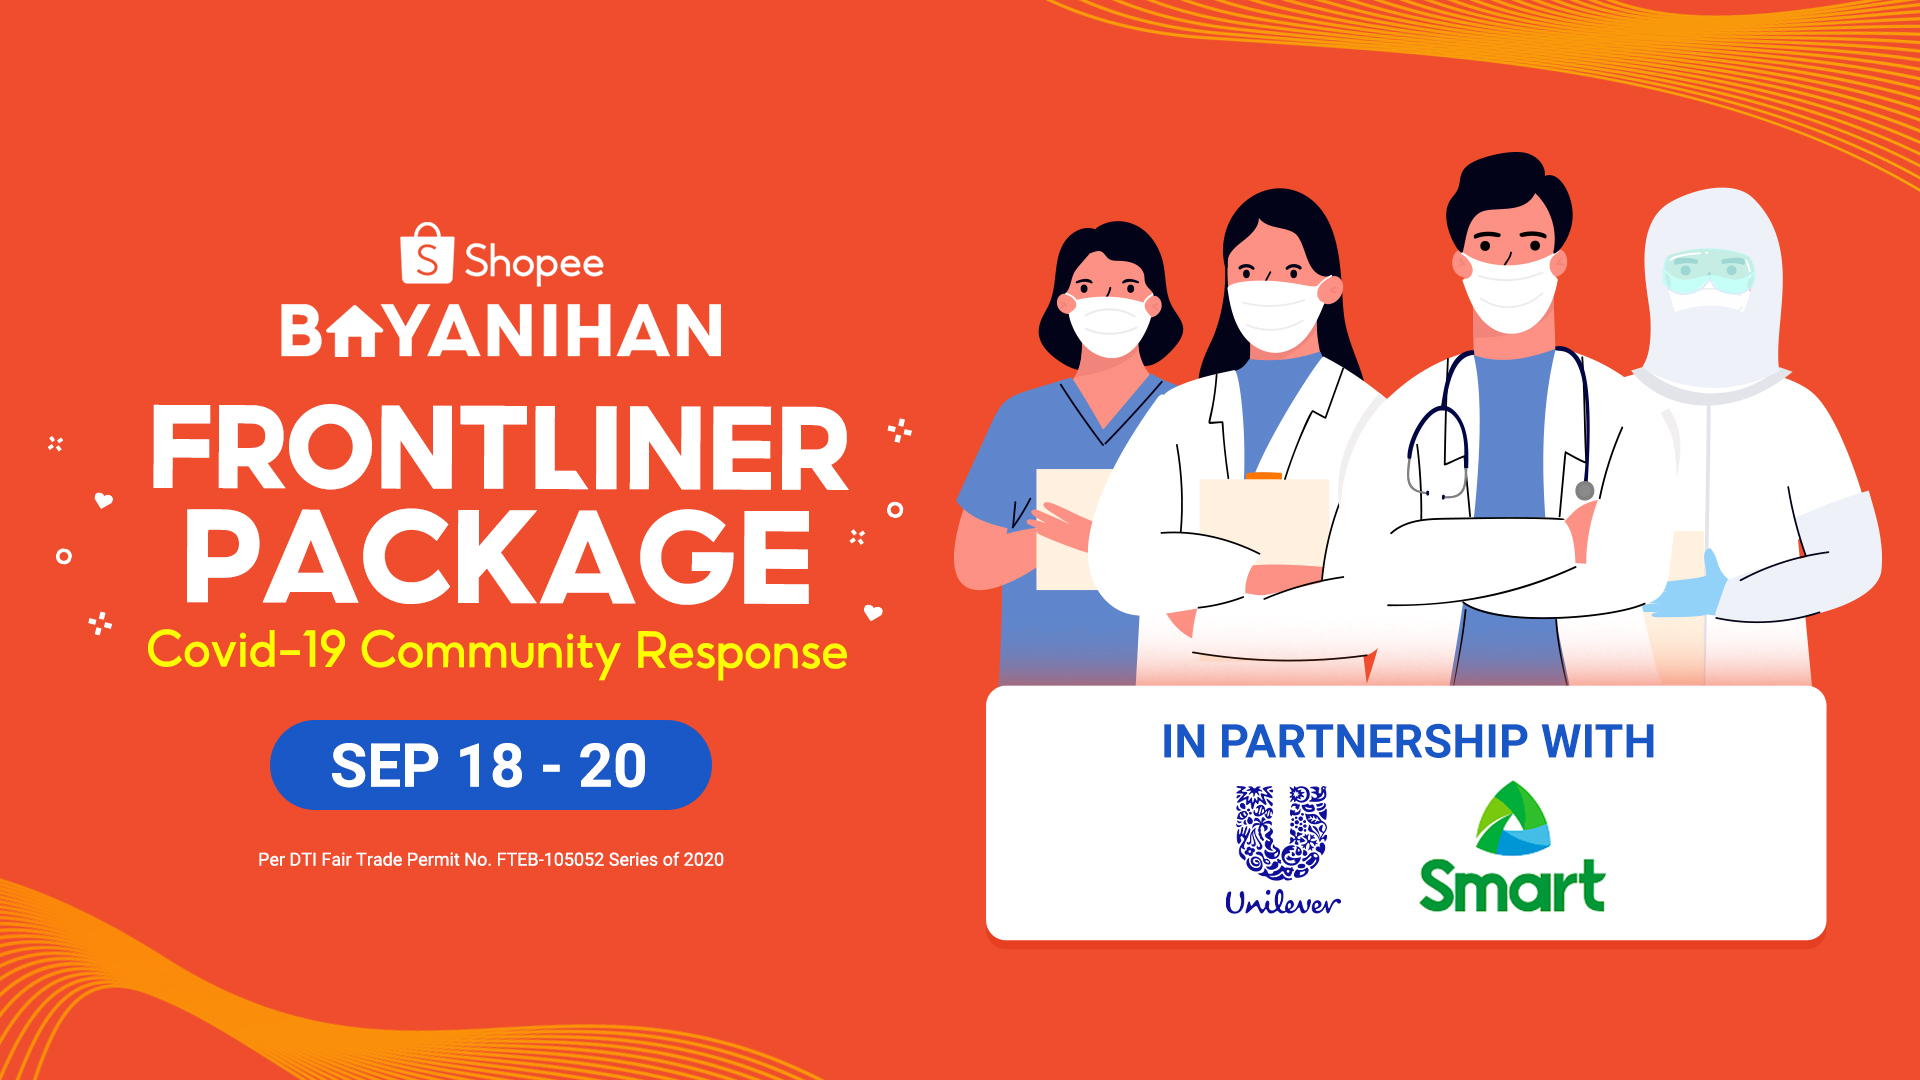 From September 18 to 20, frontliners can receive Shopee discount vouchers, mobile load, and data from Smart and Unilever's brand vouchers